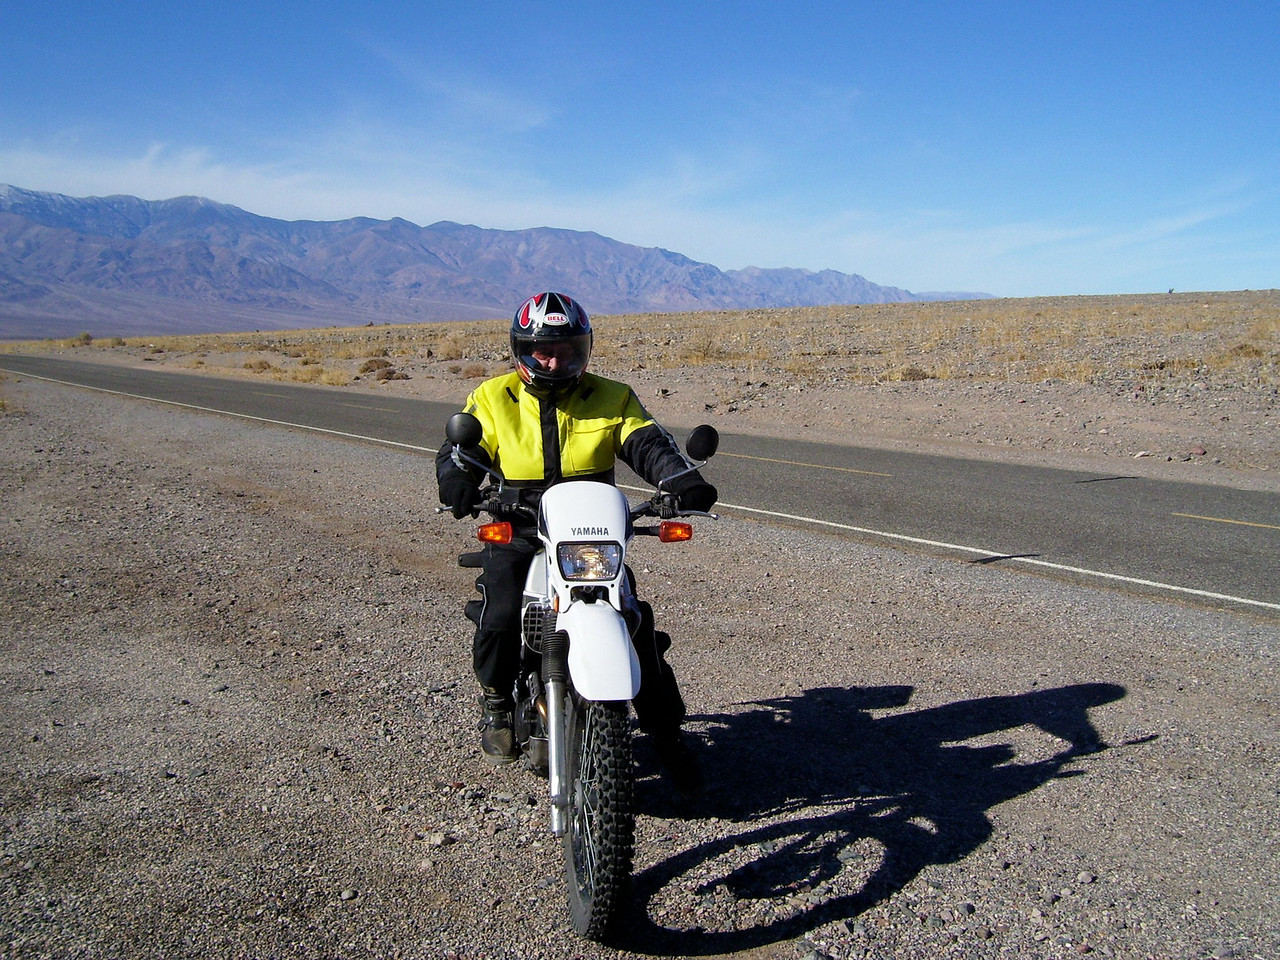 Going South on the Badwater road.